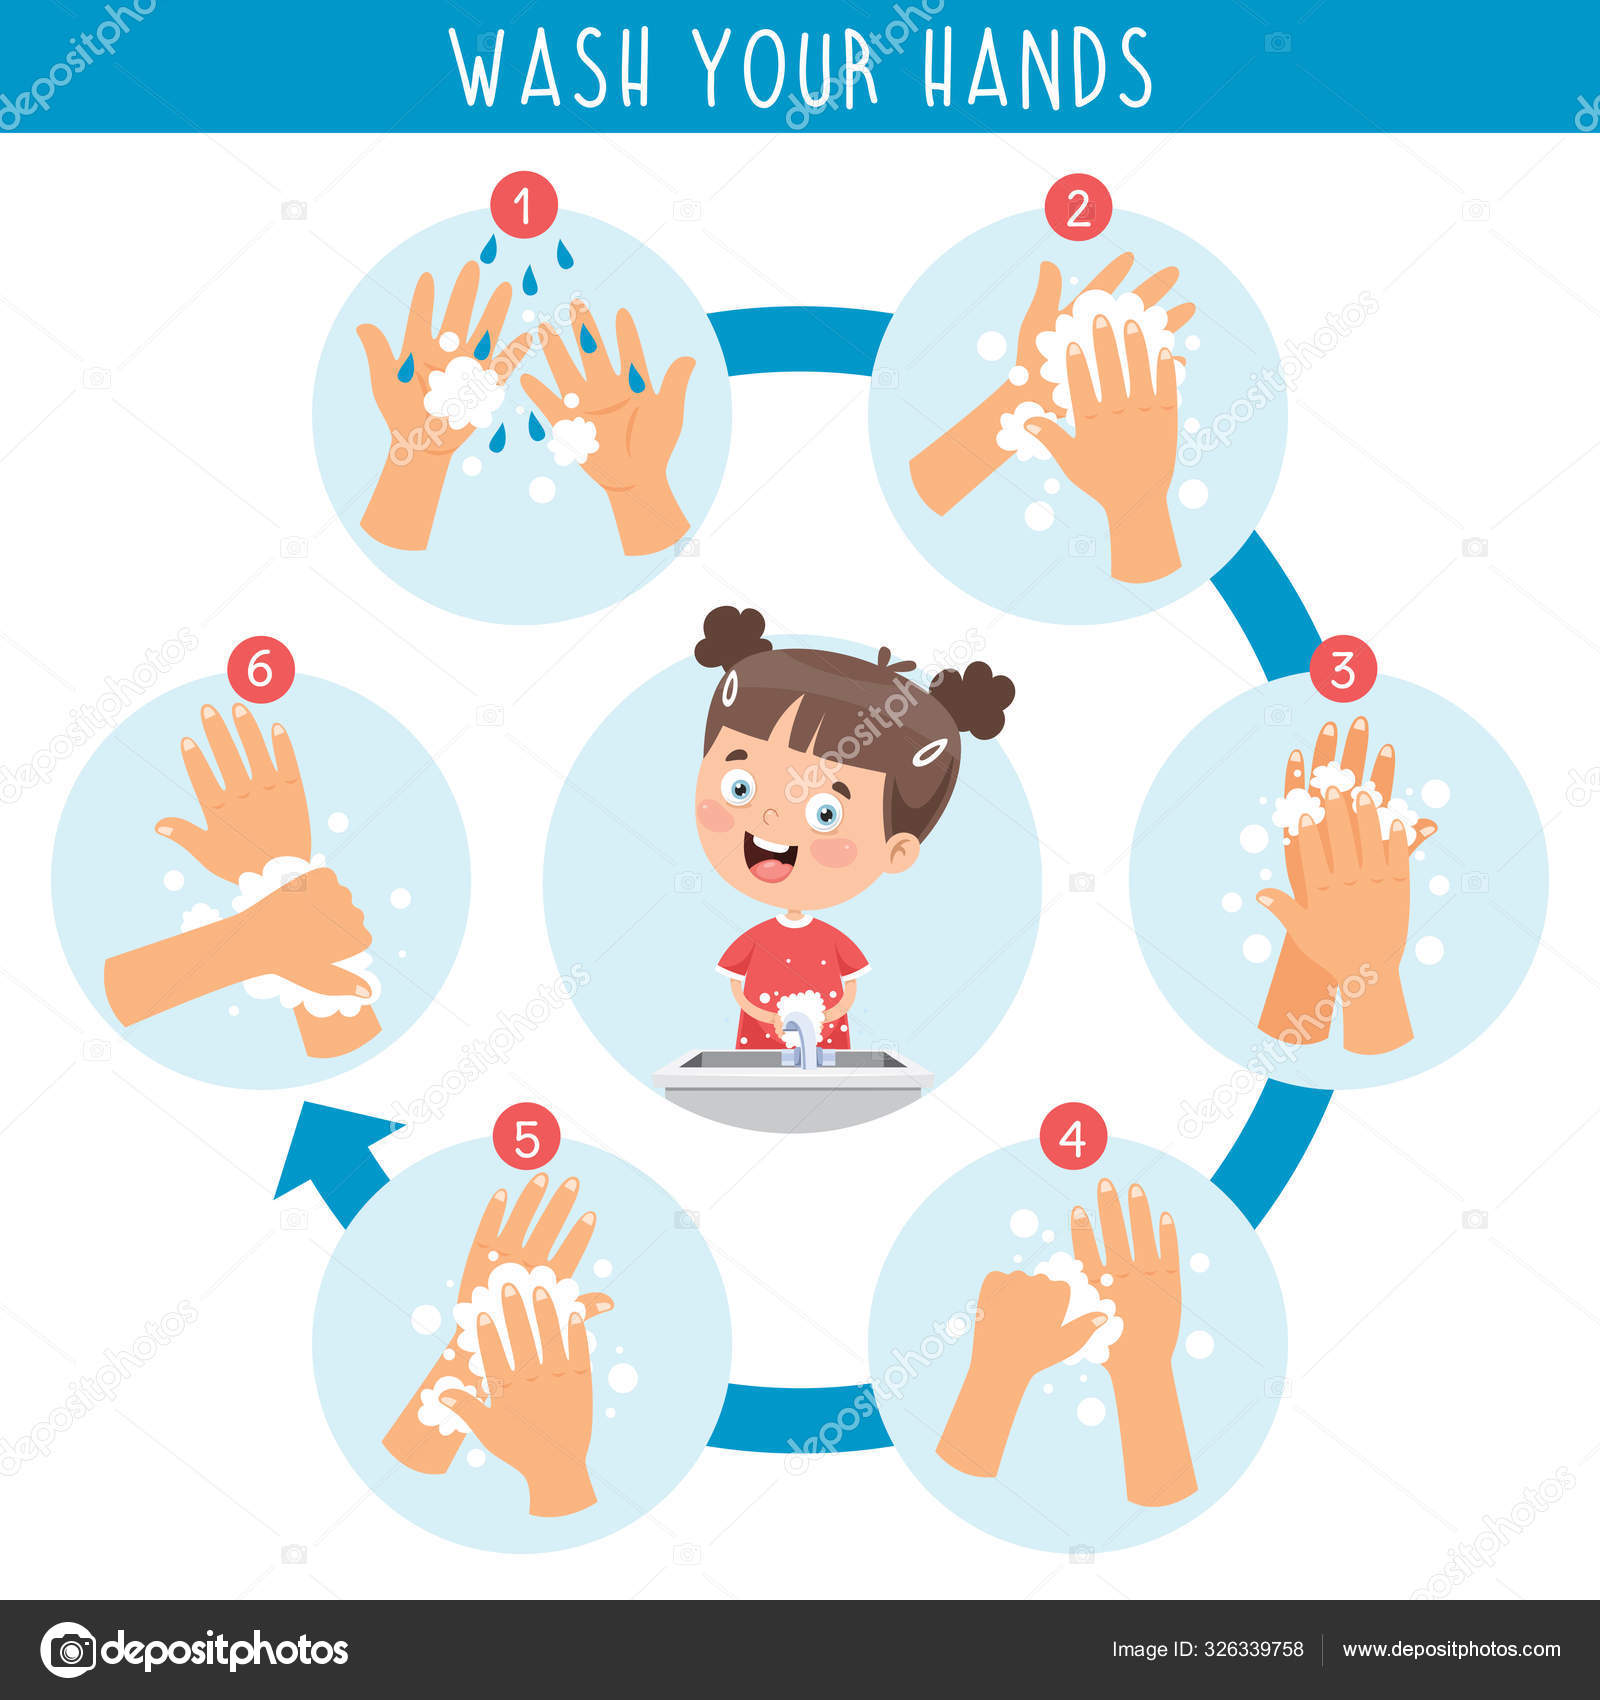 Kids holding hands clipart black and white free - ClipartAndScrap